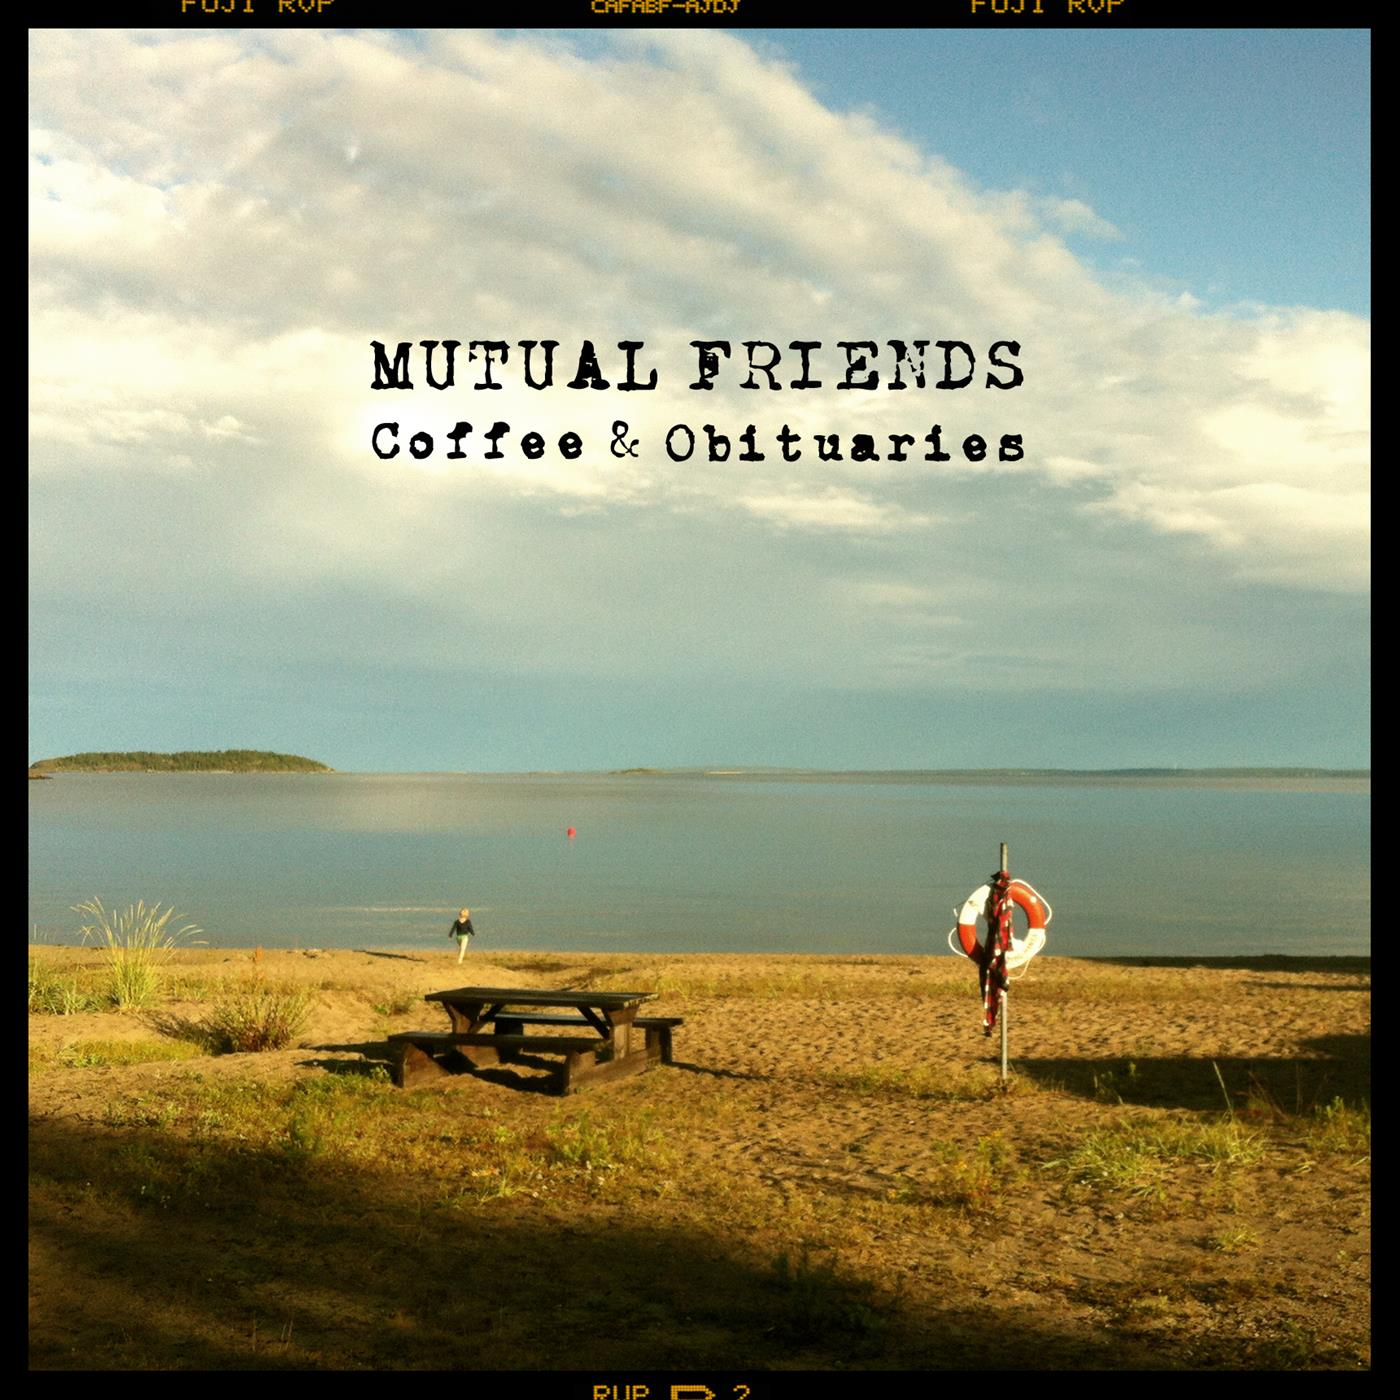 Coffee & Obituaries